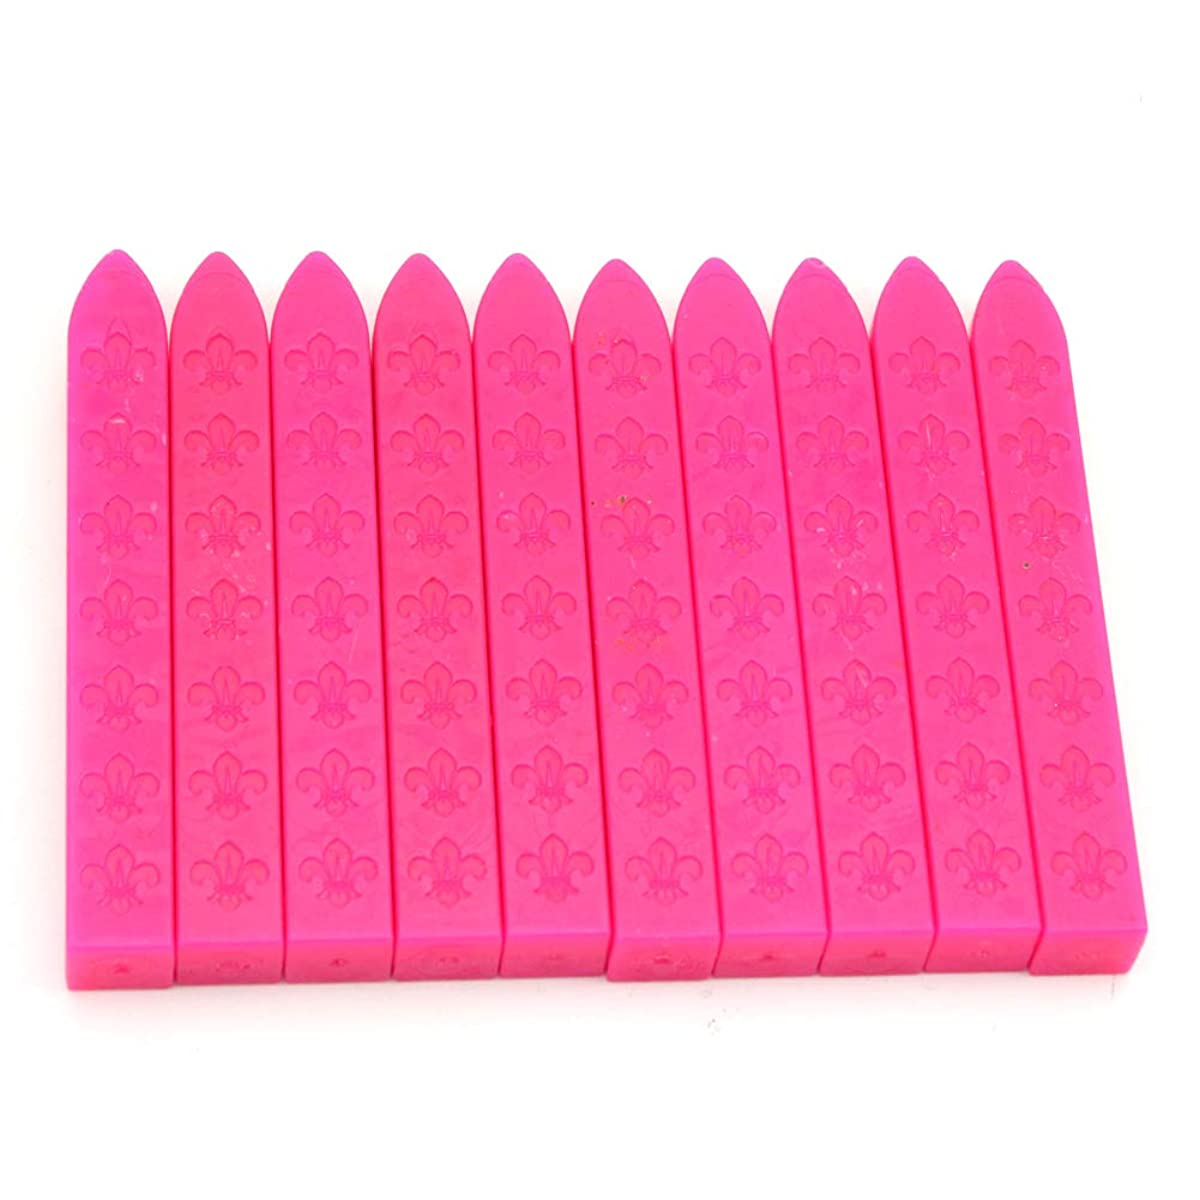 Wax Seal Sticks,10Pcs Sealing Wax Sticks Without Wicks Sealing Wax for Postage Letter Retro Vintage Wax Seal Stamp (Rose)